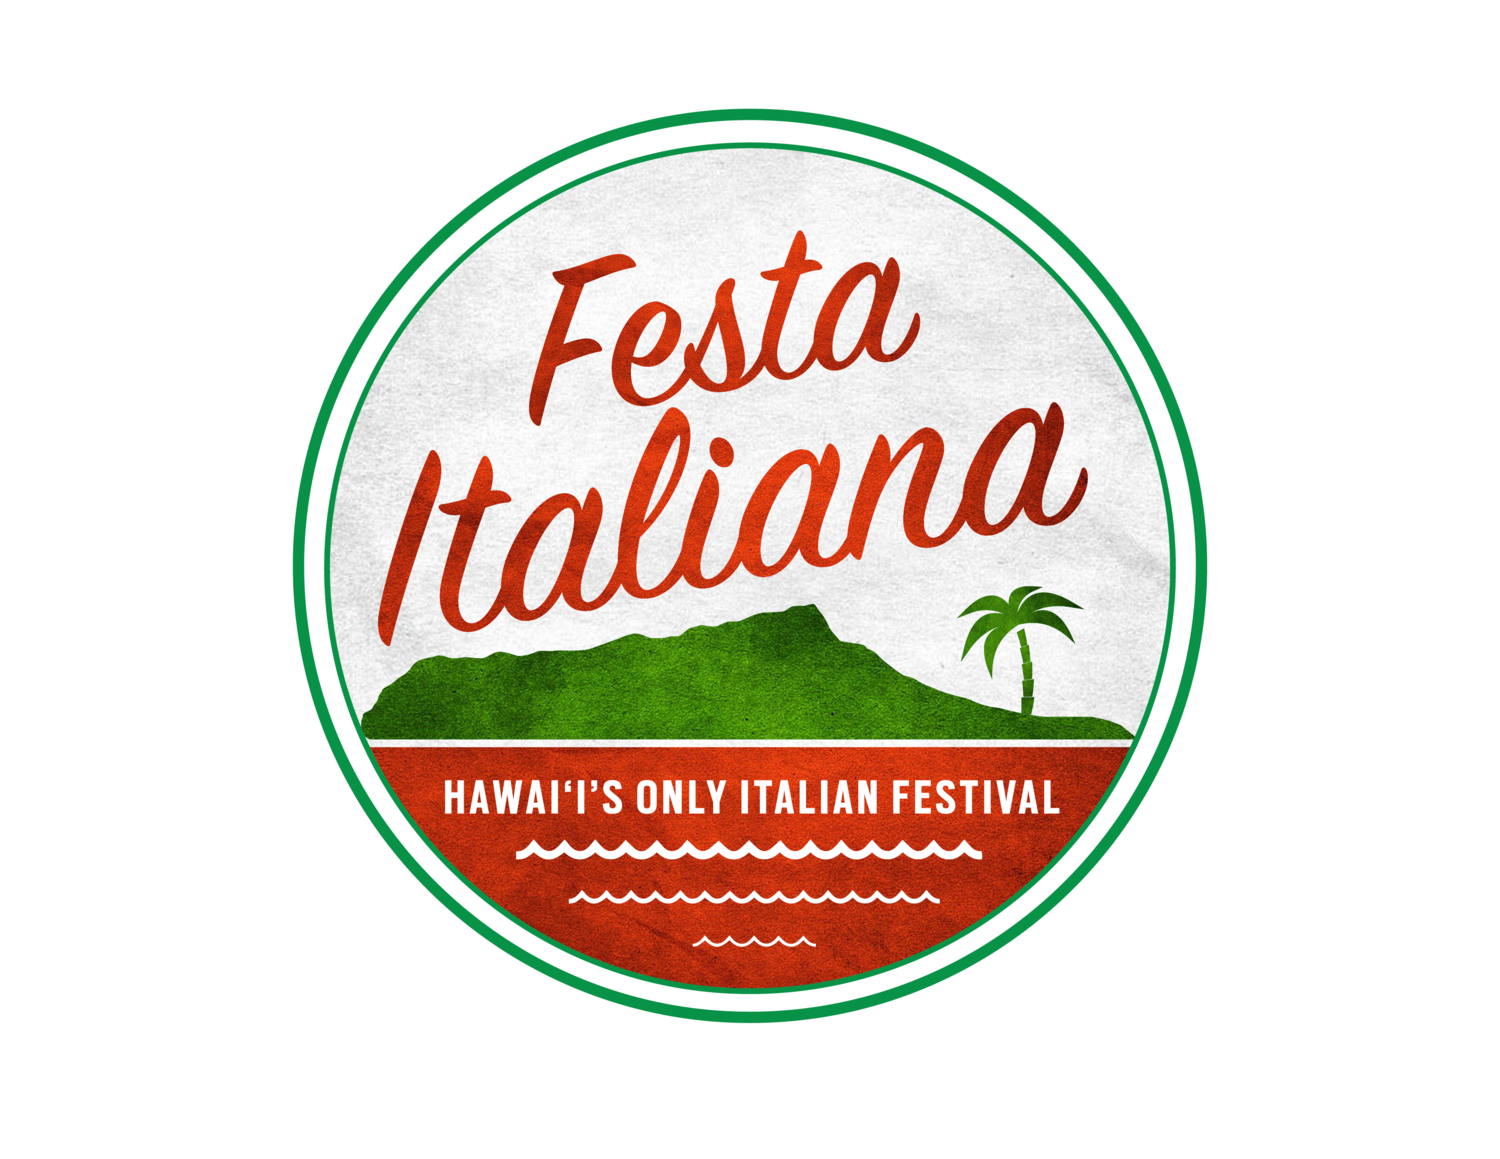 Festa Italiana Hawaii